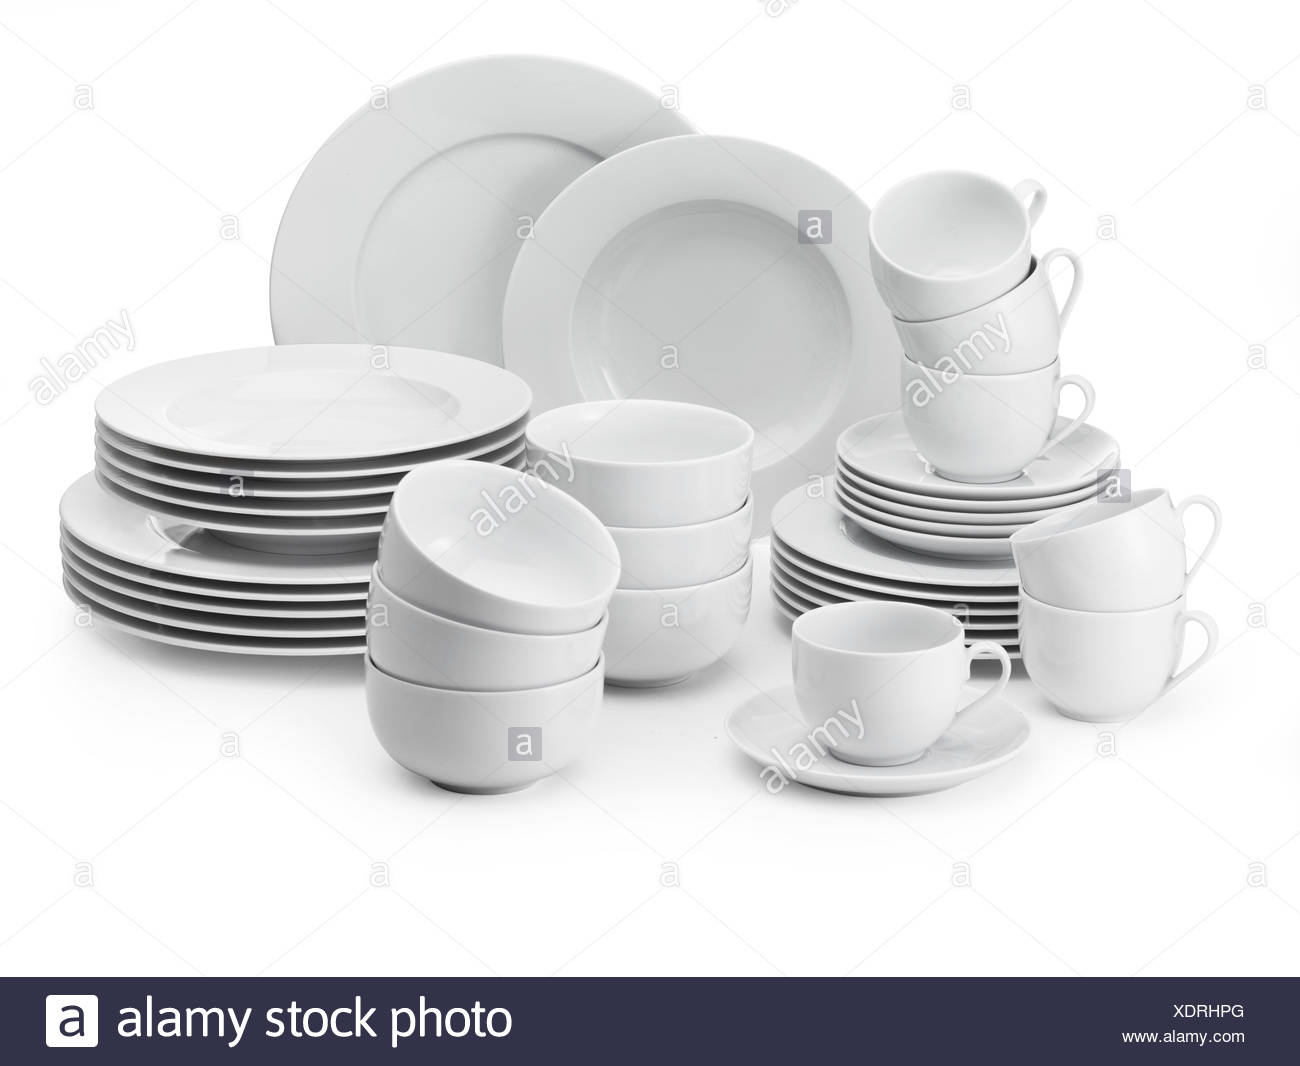 White tableware cups plates bowls  sc 1 st  Alamy & White tableware cups plates bowls Stock Photo: 283875272 - Alamy